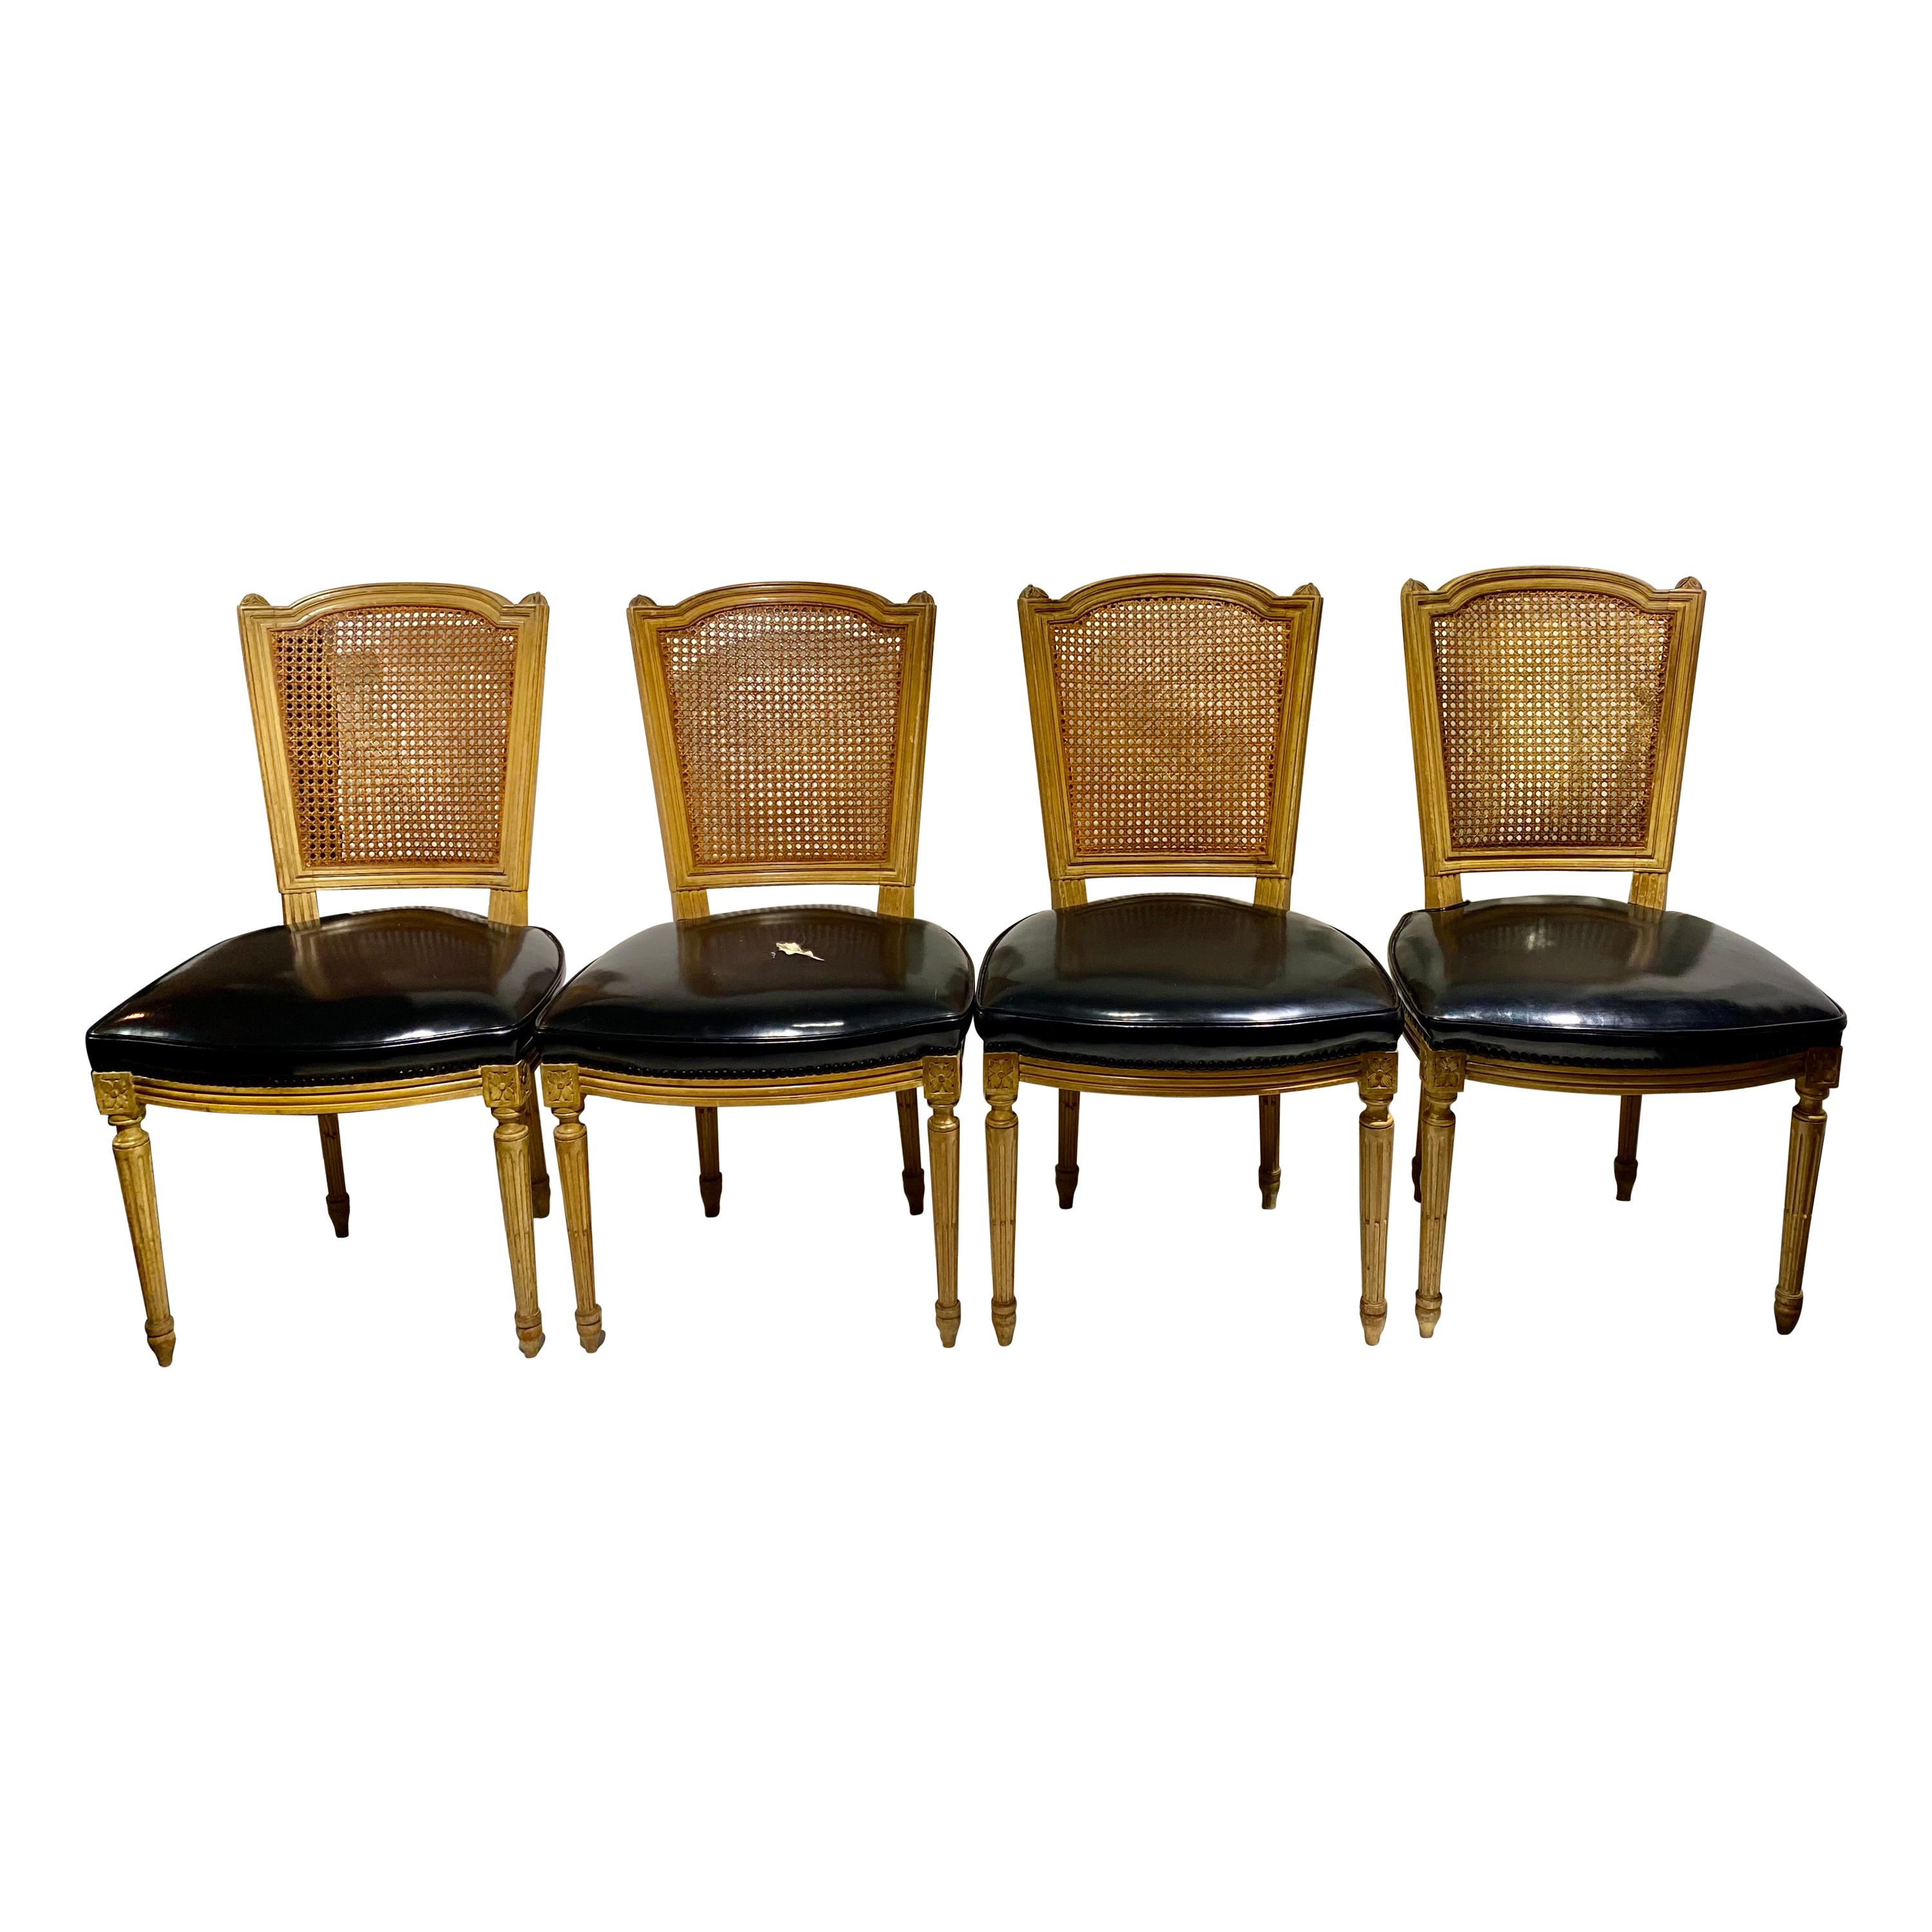 Maison Jansen Stamped Caned-Back Chairs, Set of Four, French